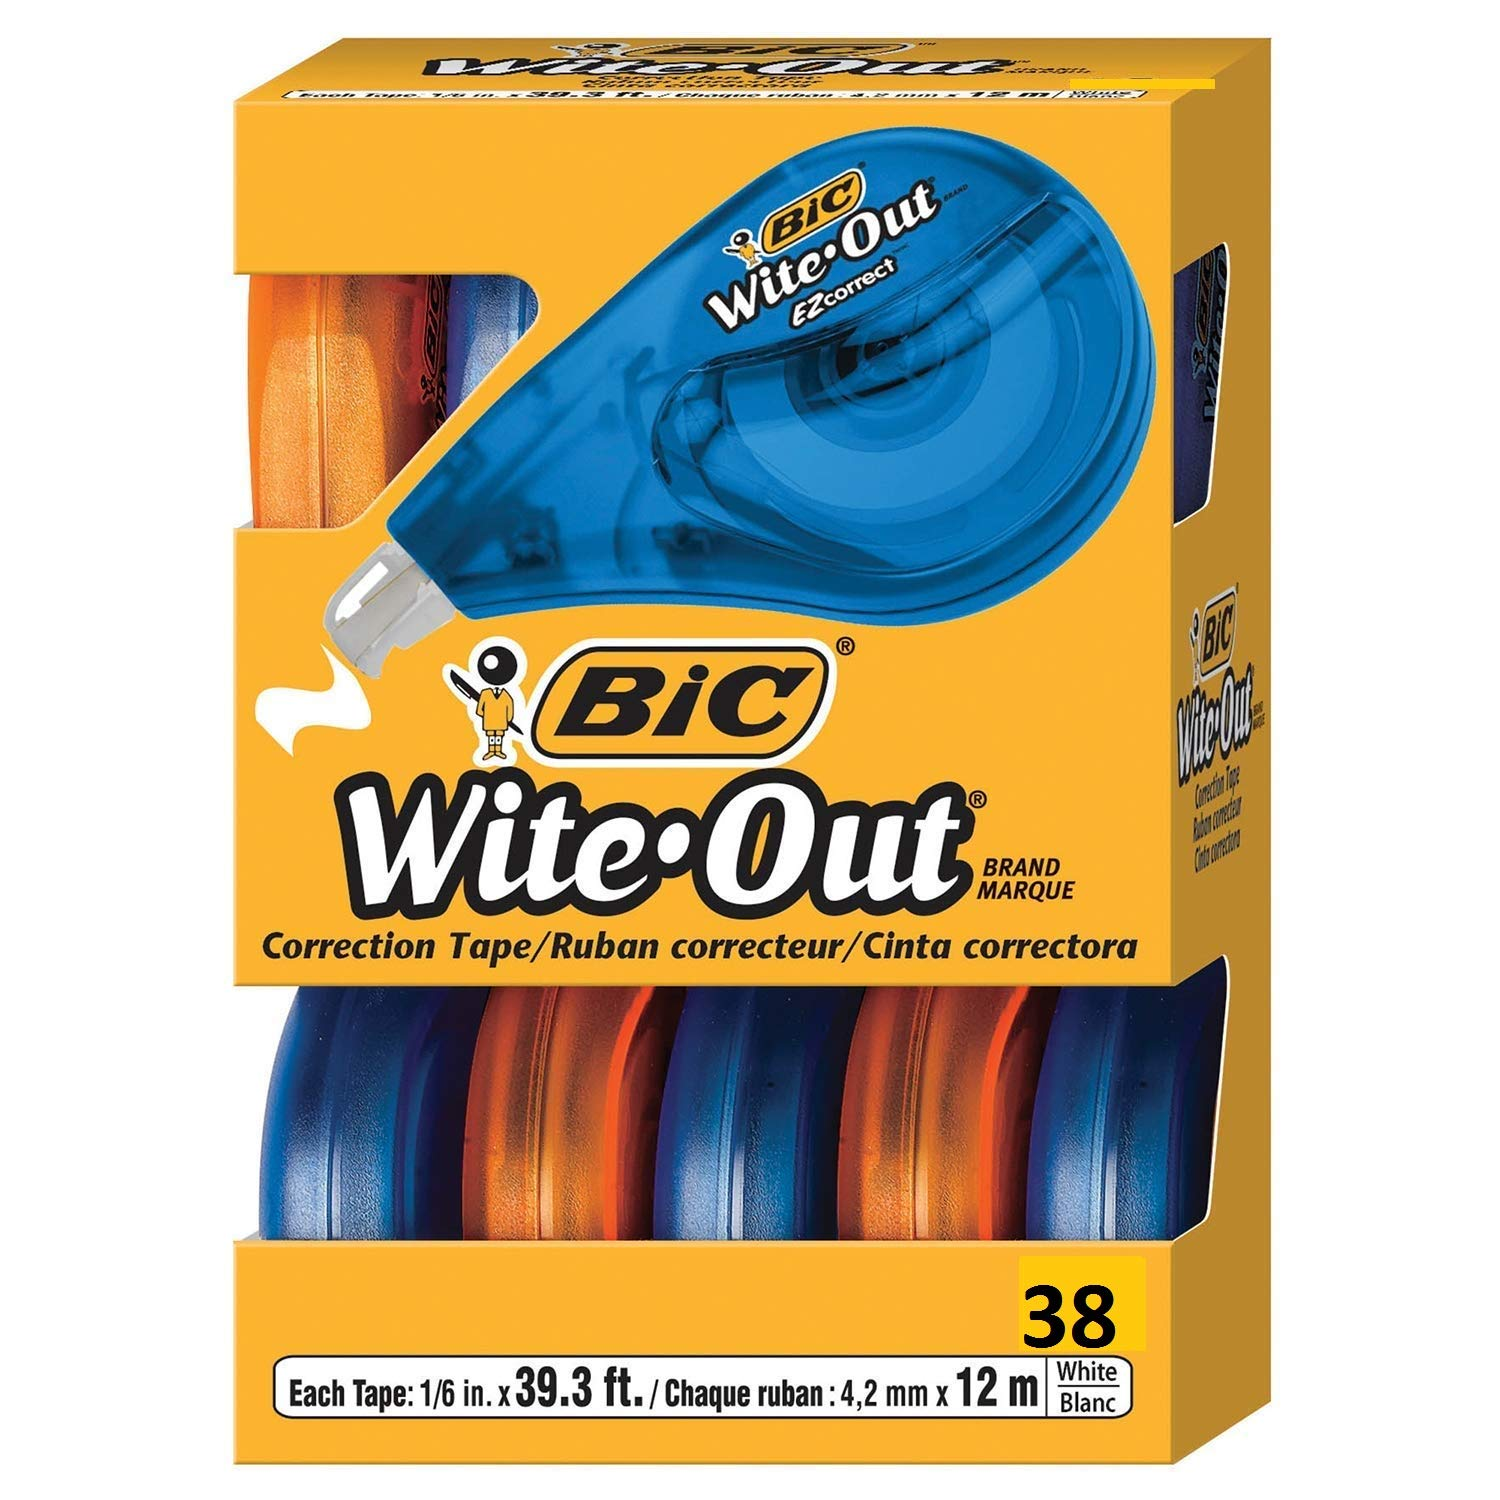 BIC Wite-Out Brand EZ Correct Correction Tape, White, 38-Count (38) by BIC (Image #1)